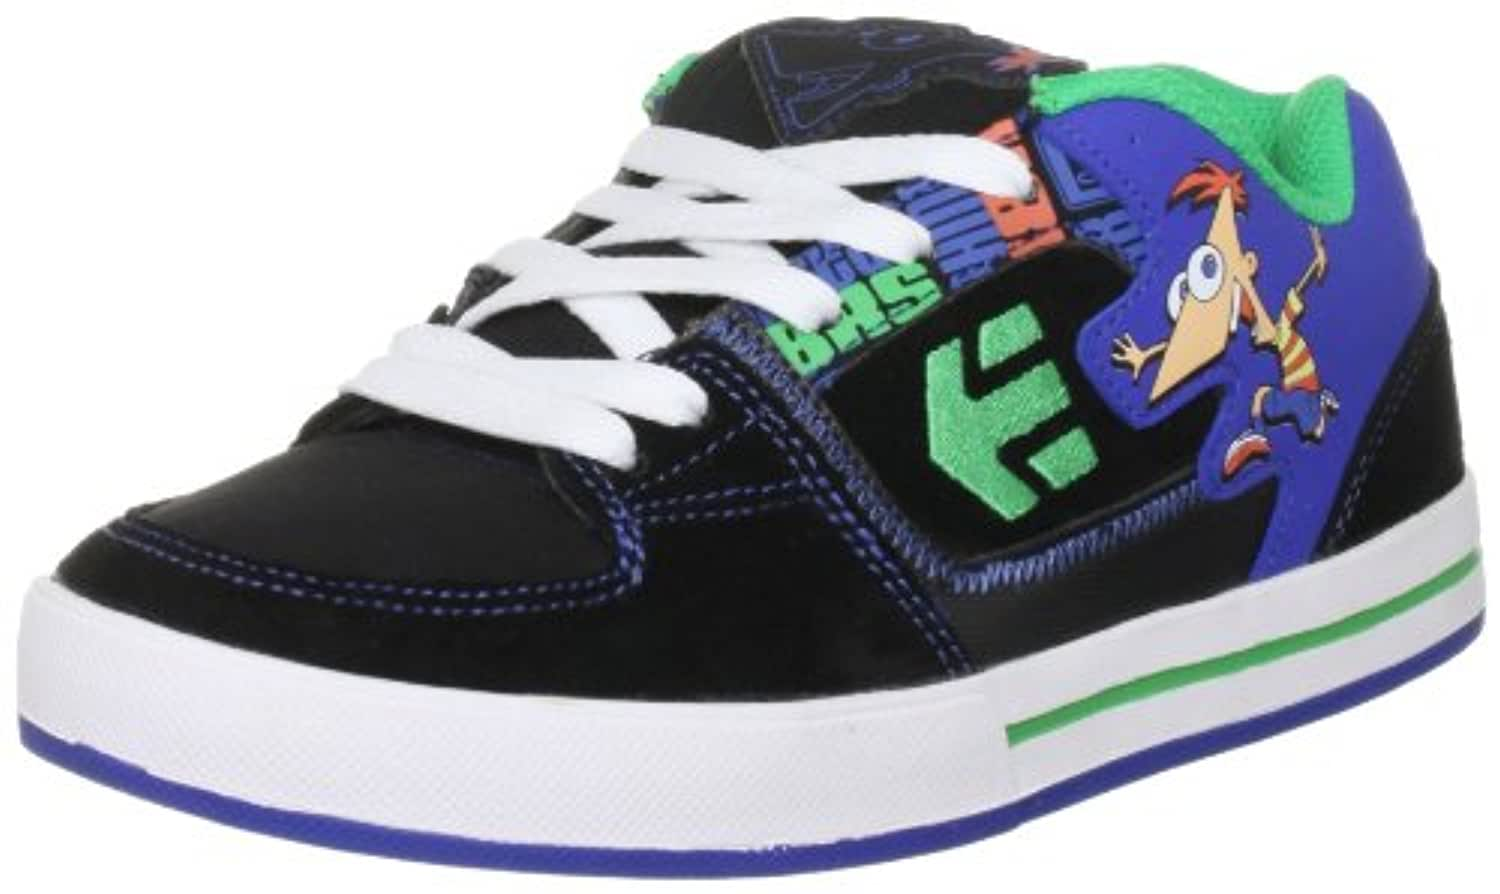 Etnies Disney Kids Ronin Green/Orange Fashion Sports Skate Shoe 4301000110 4 UK Youth